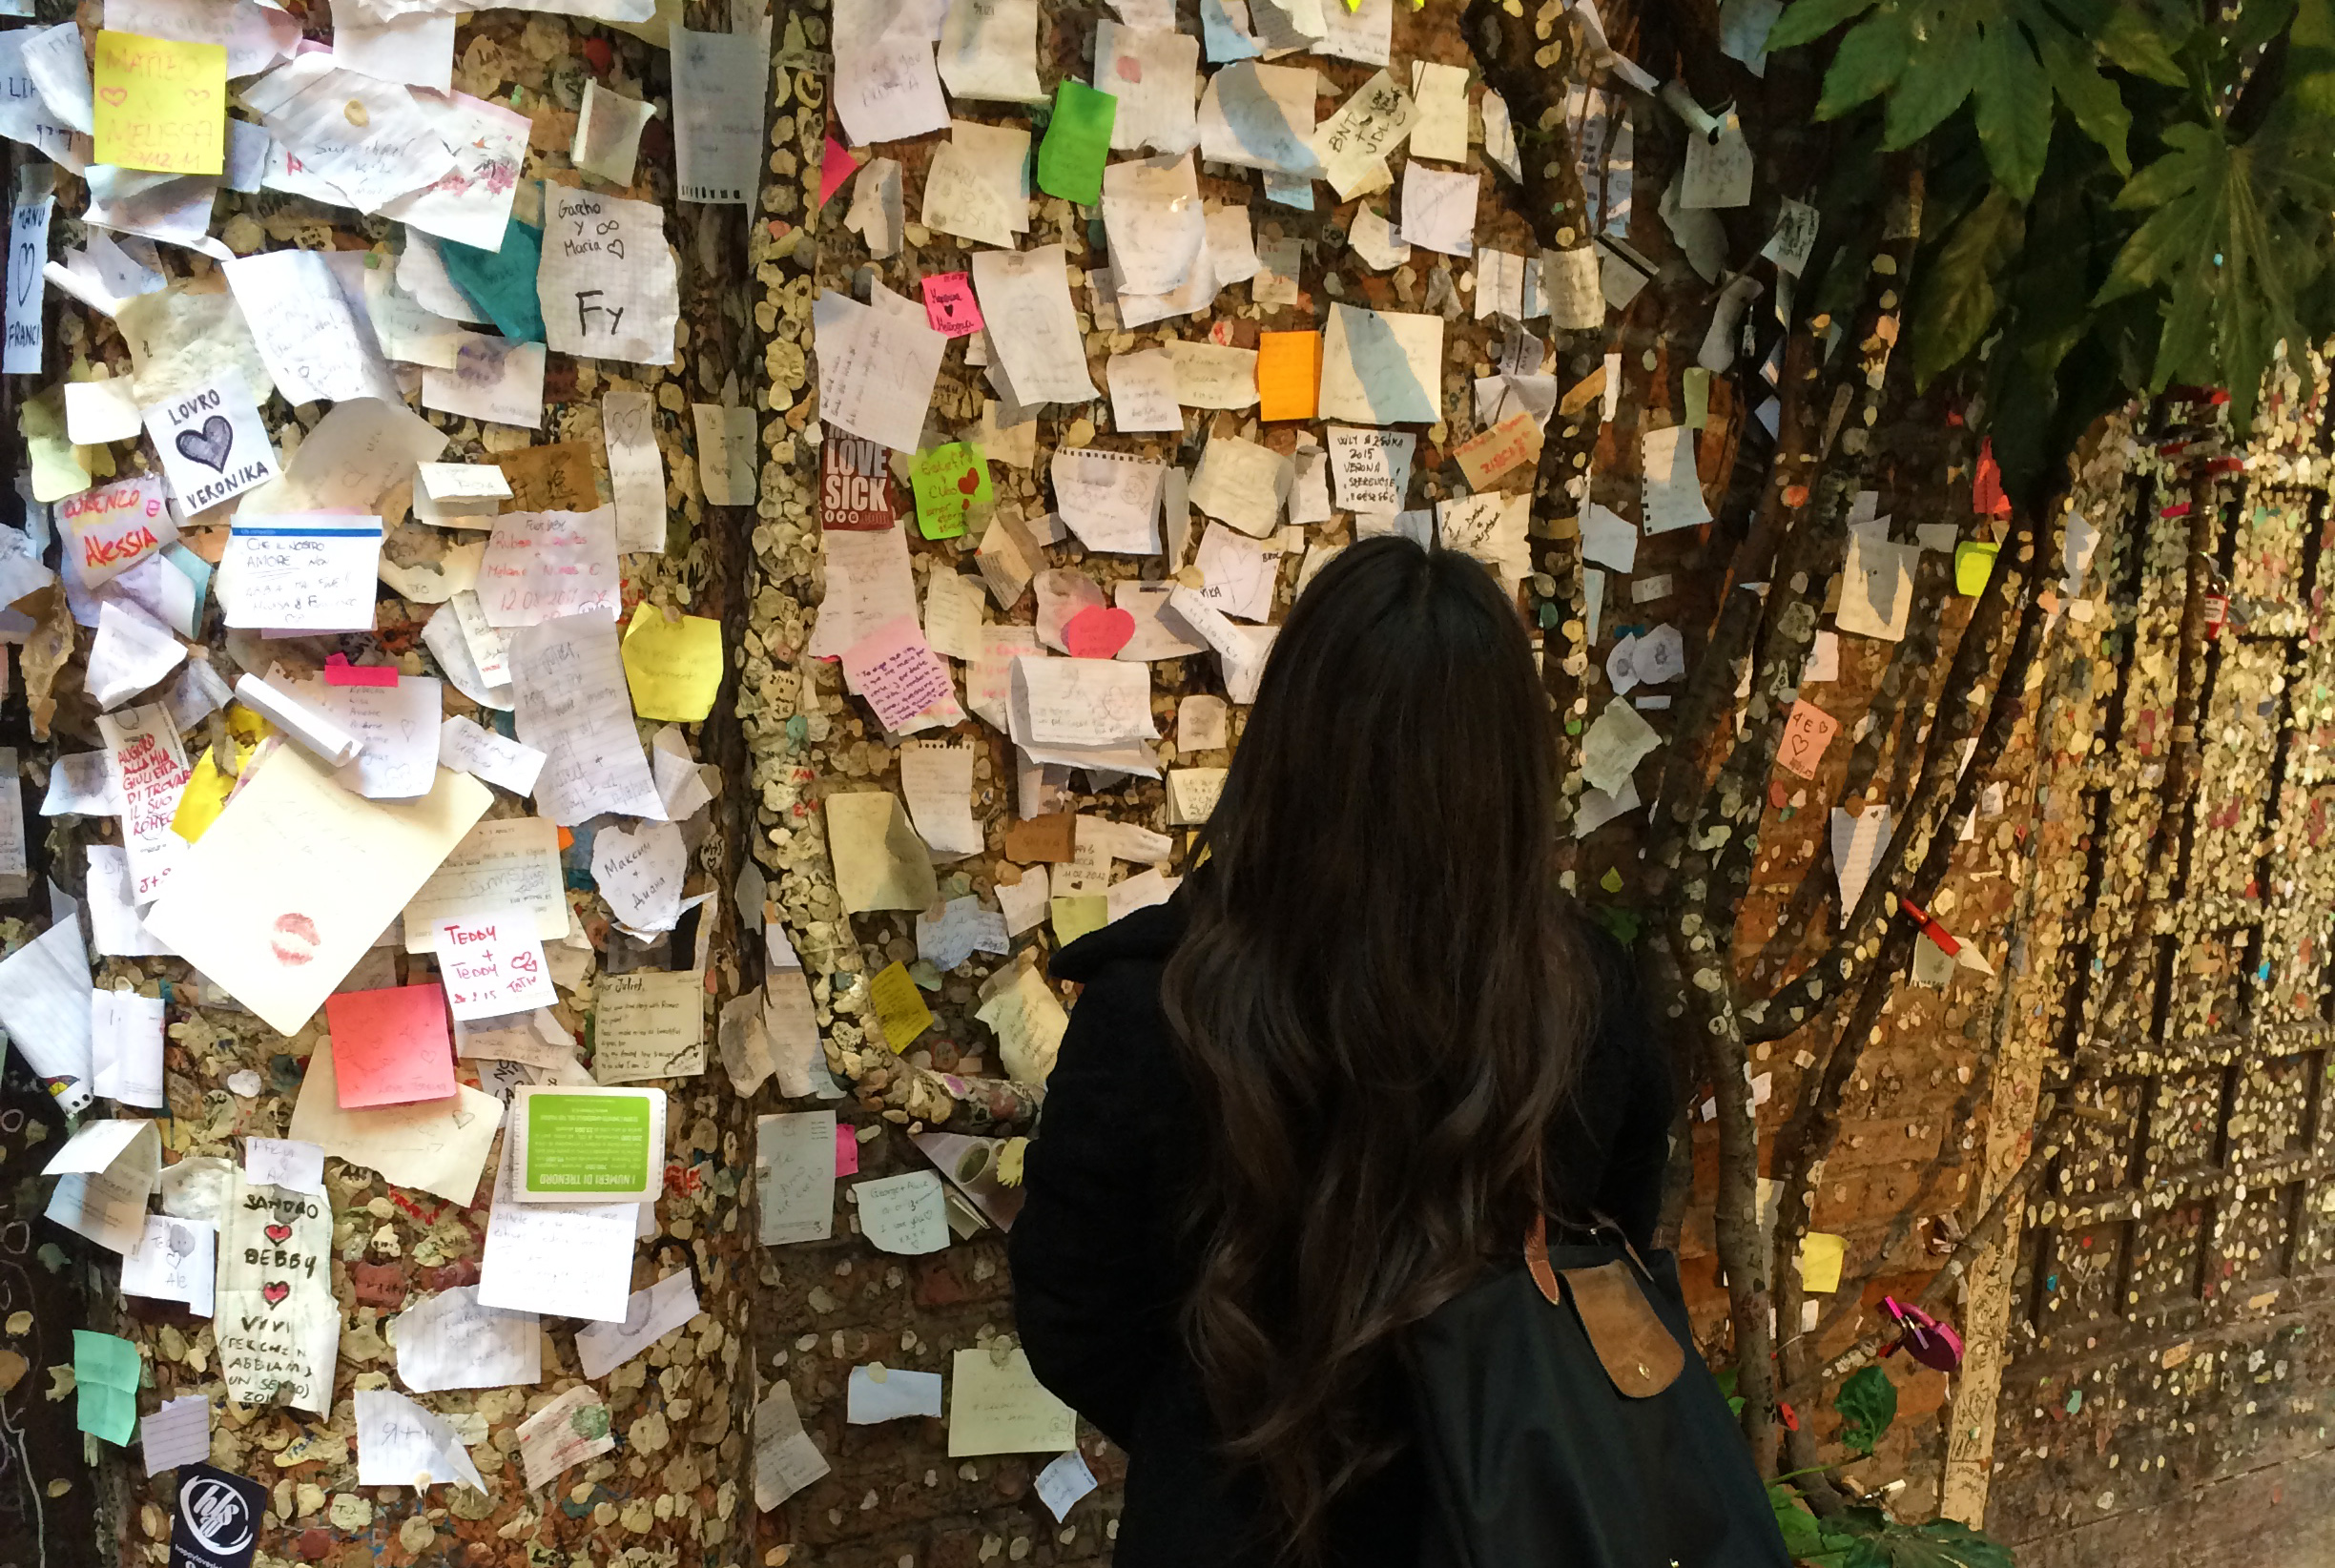 Some of the handwritten love letters to Juliet